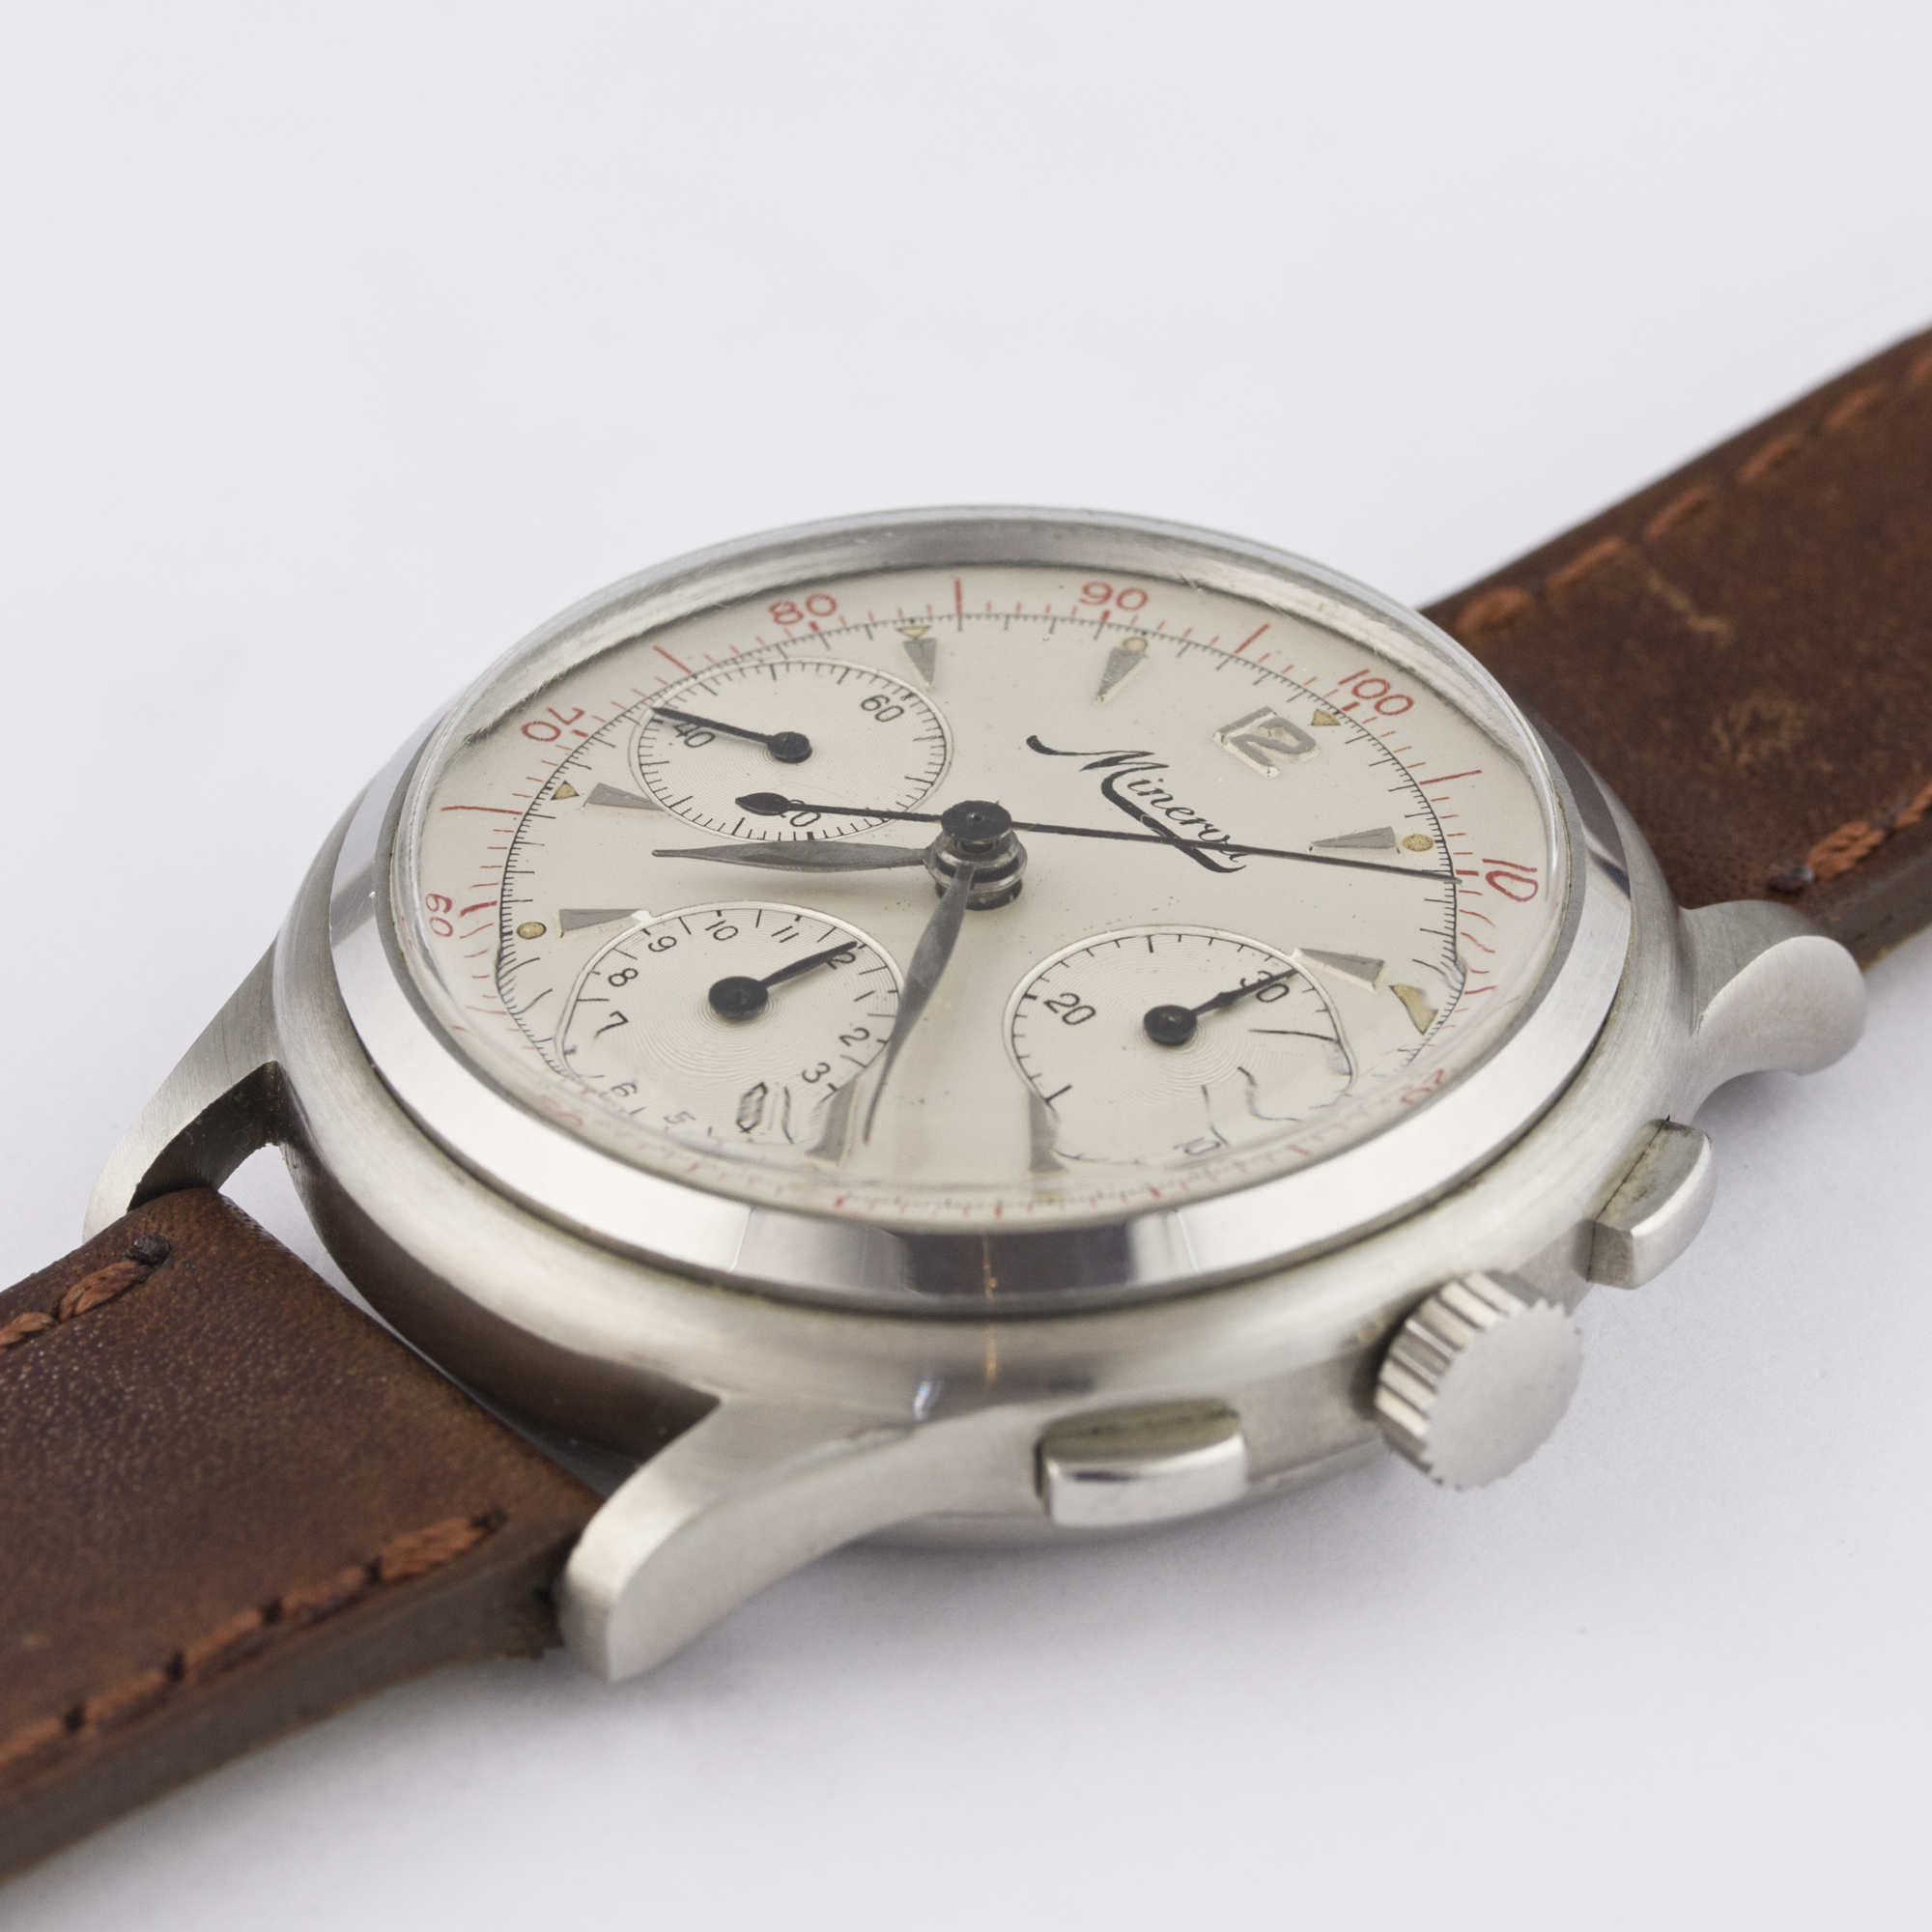 A RARE GENTLEMAN'S STAINLESS STEEL MINERVA DECIMAL CHRONOGRAPH WRIST WATCH CIRCA 1950s D: Silver - Image 4 of 9